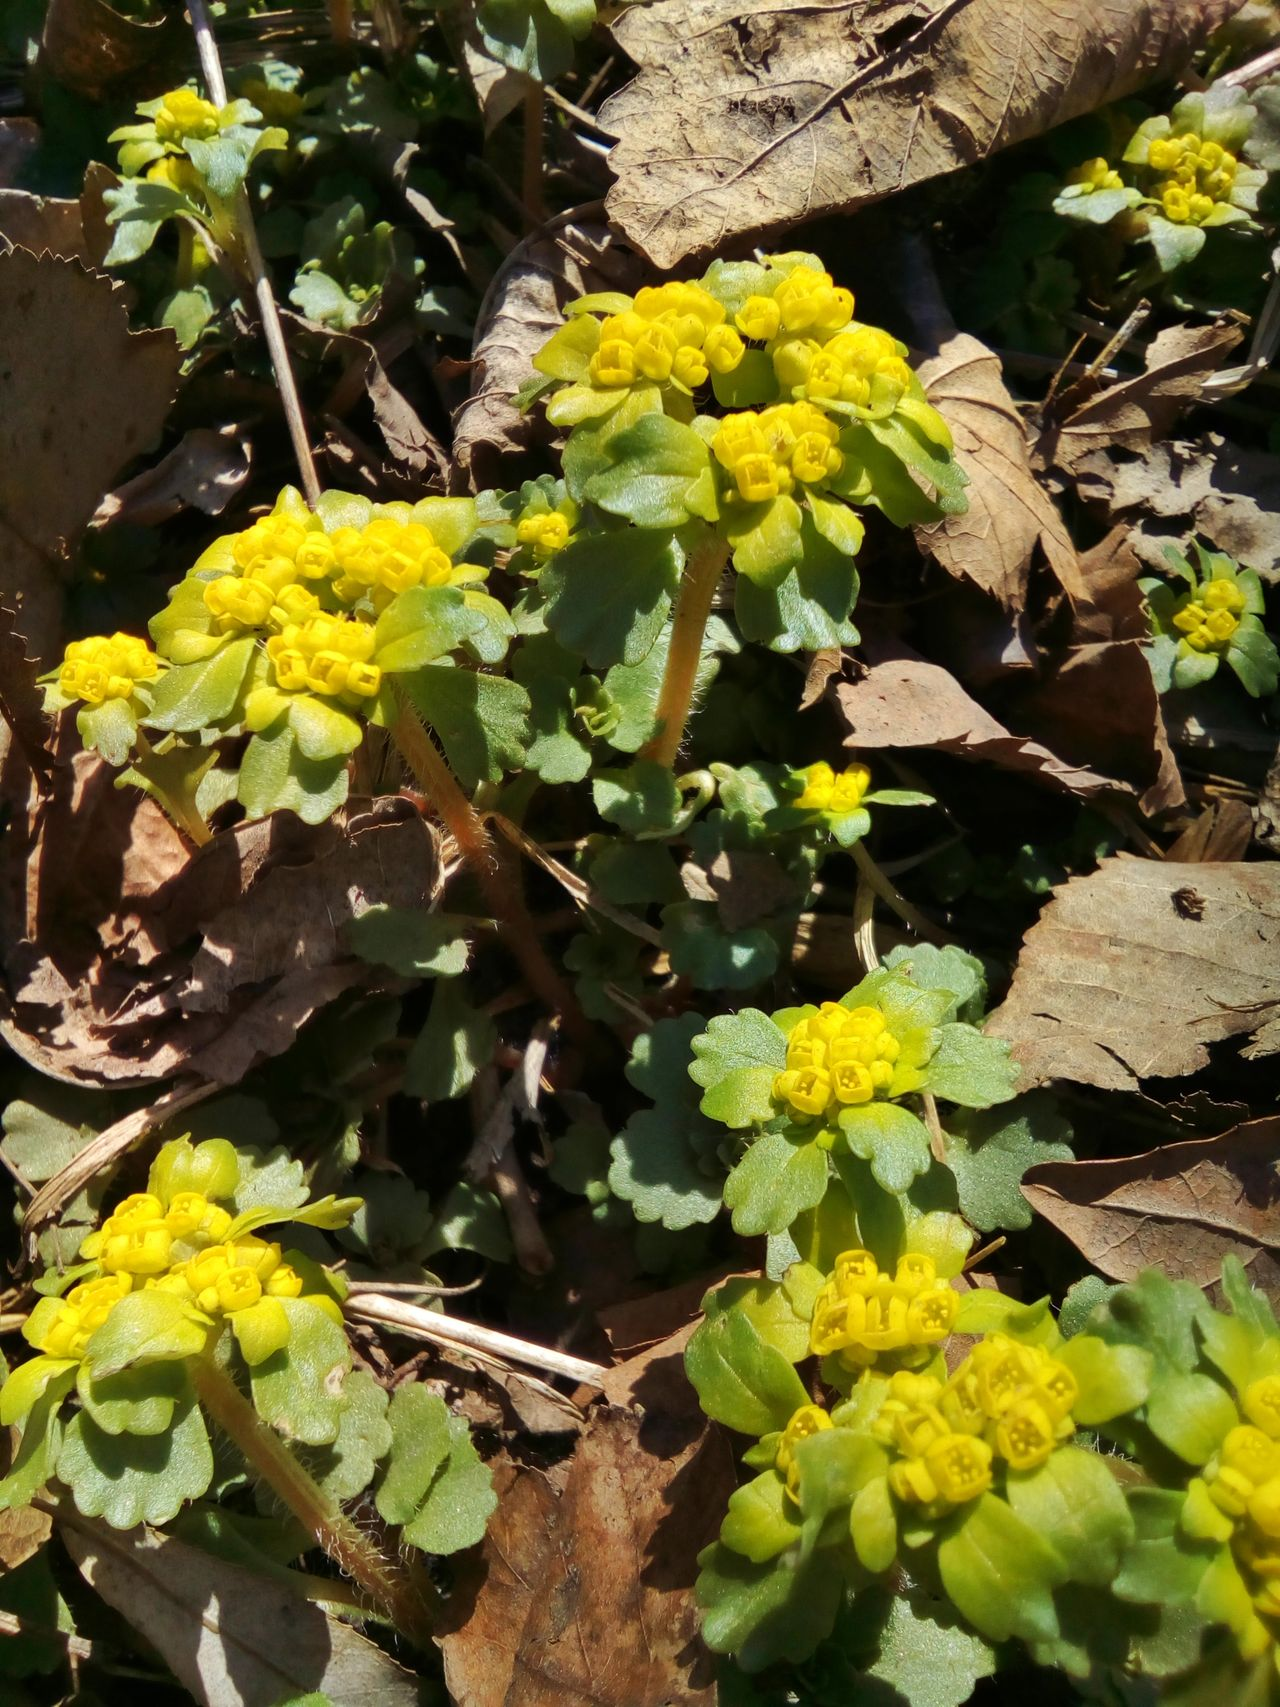 Spring flowers Growth Leaf Yellow Close-up Nature Day Outdoors Green Color Plant Sunlight No People Beauty In Nature Fragility Freshness Spring April Blossom Flowers Blossom Blooming Flower Chrysosplenium Chrysosplenium Alternifolium Medicinal Plant